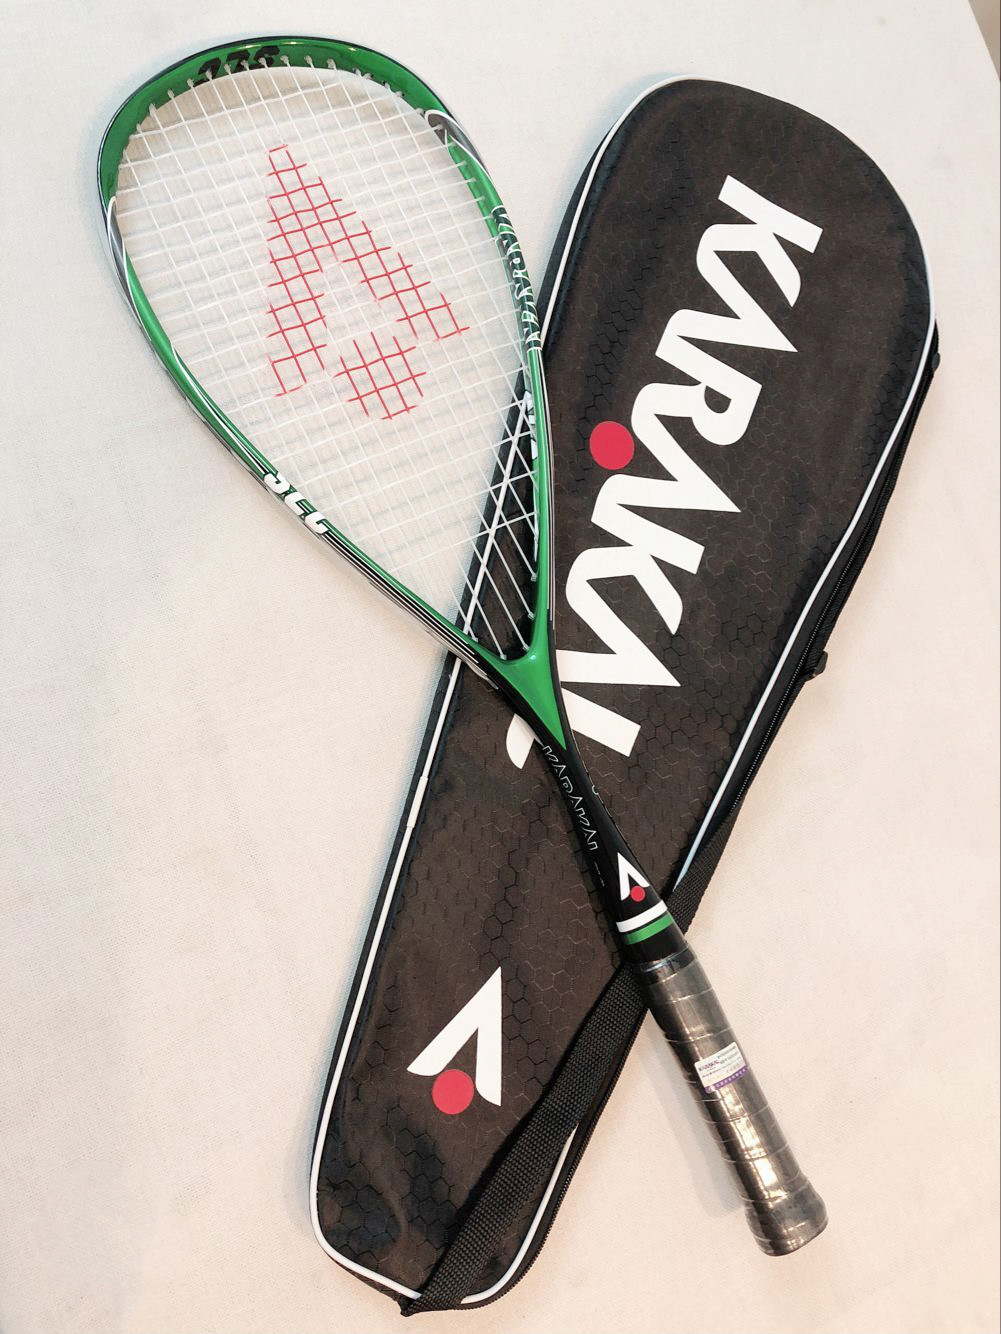 Original Karakal Squash Racket 130g SLC Carbon Fiber Material For Squash Sport Training Match game for